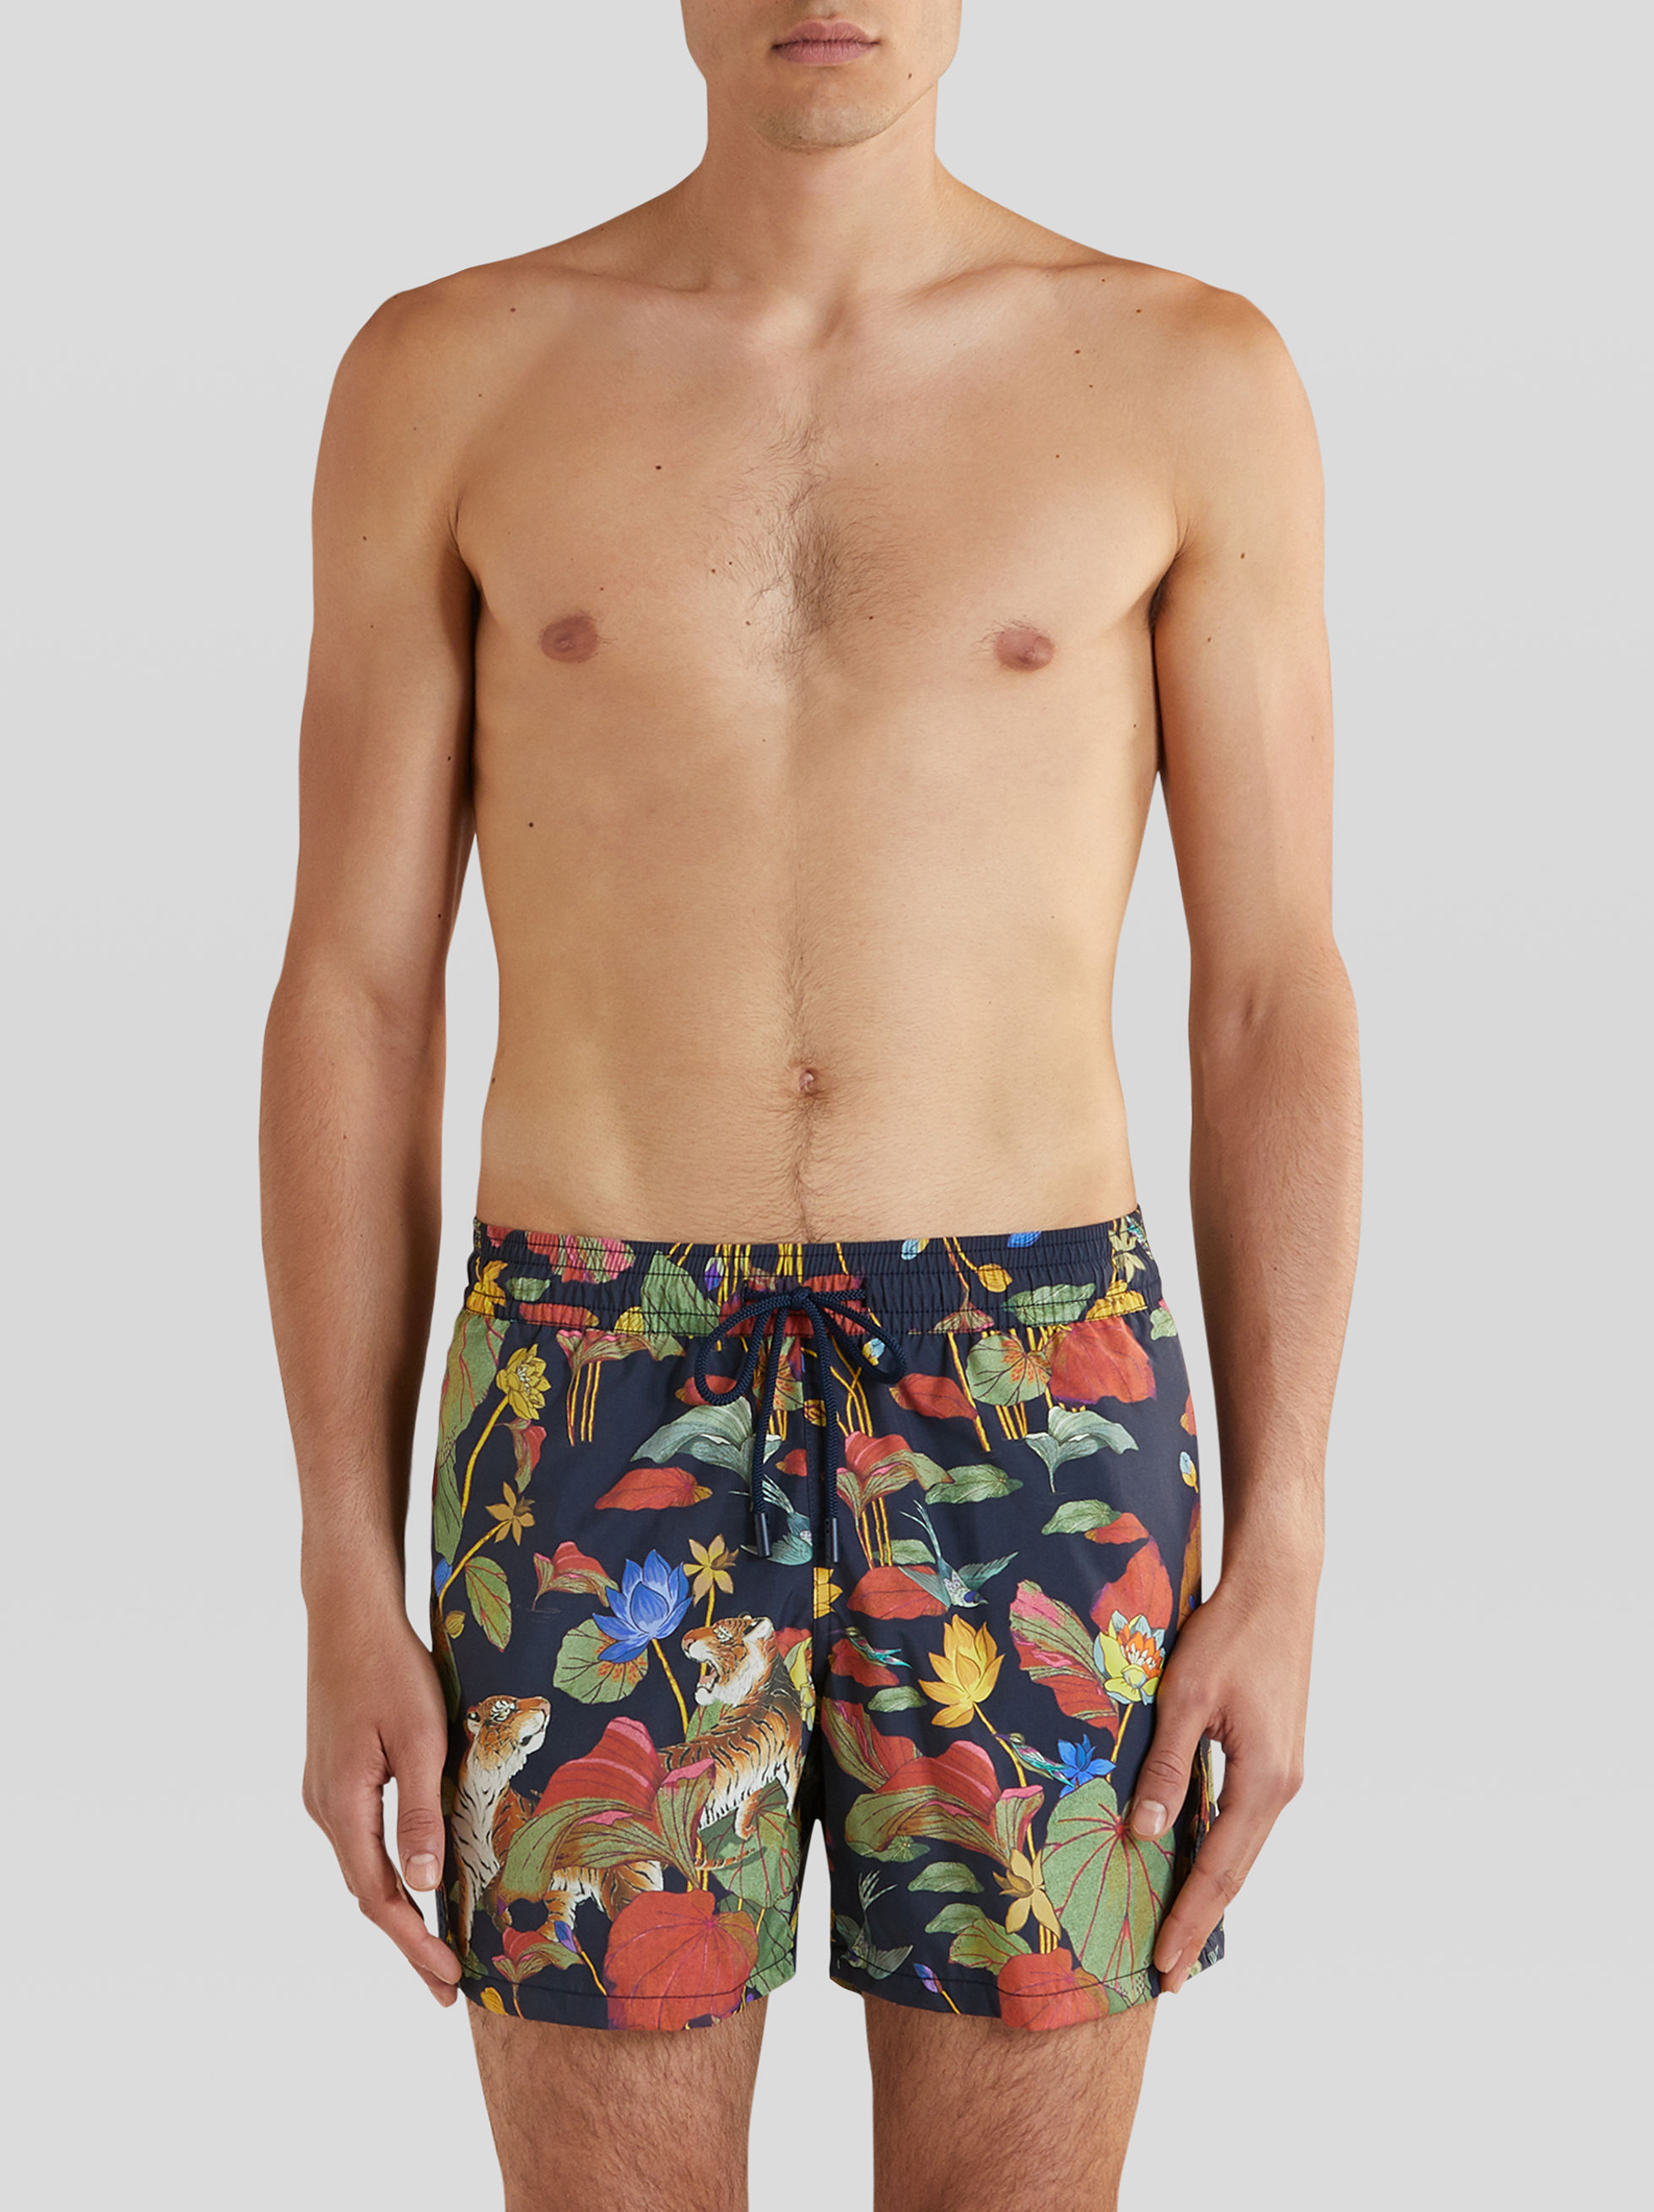 TIGER AND WATER LILY PRINT SWIM SHORTS